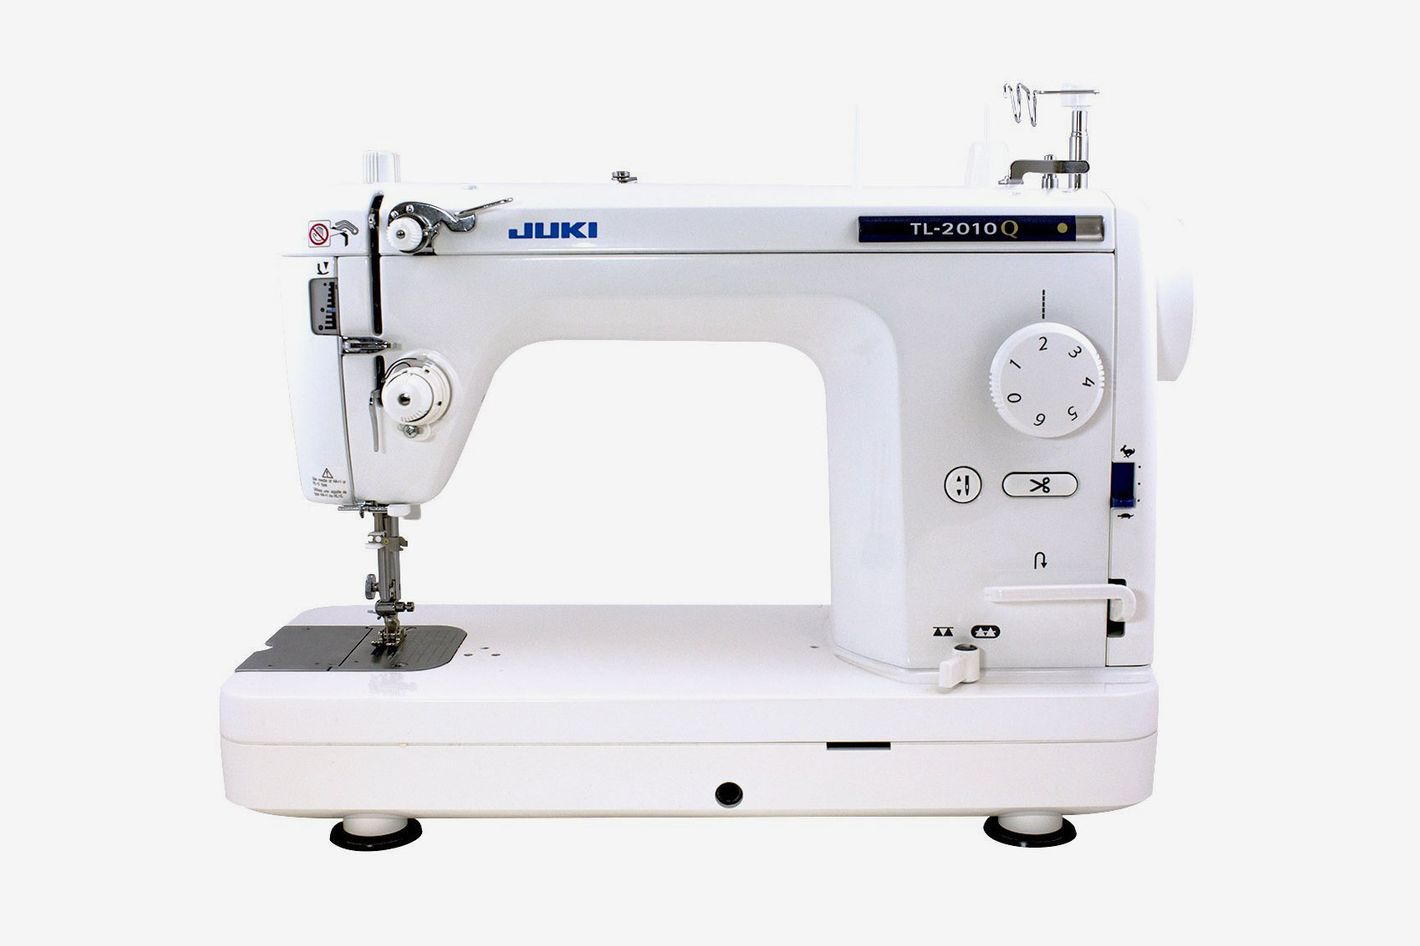 Juki TL-2010Q 1-Needle Lockstitch, Portable Sewing Machine